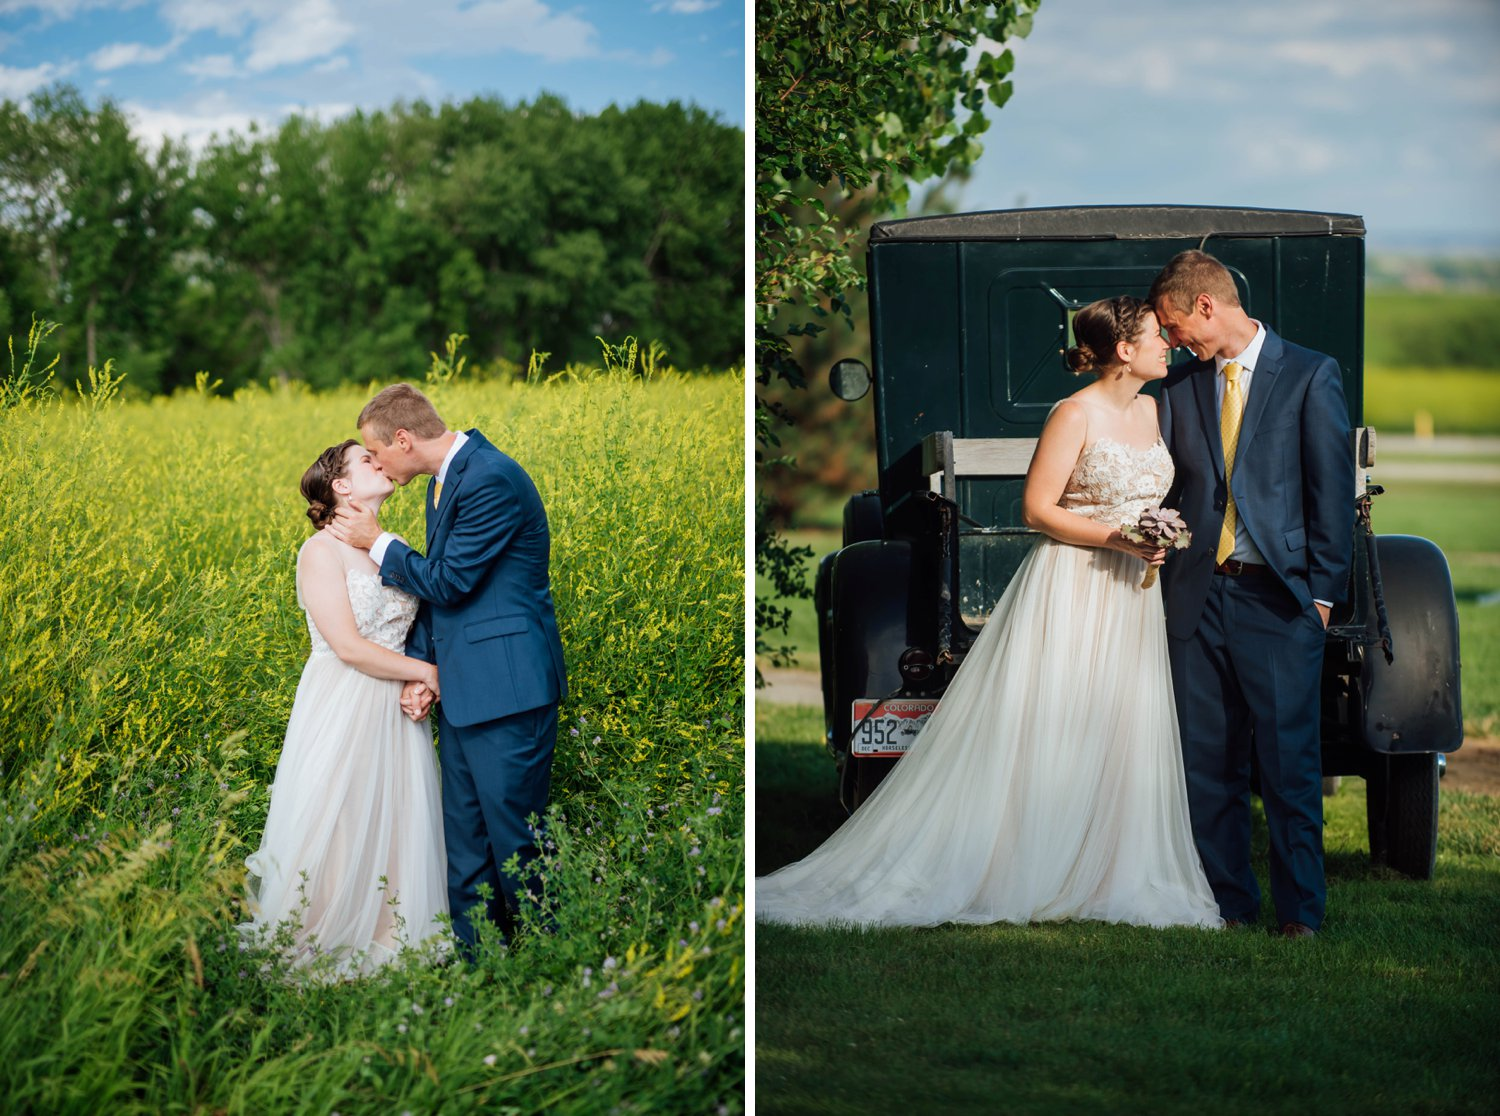 I love these fields of tall grass and the picture with the bride and groom standing in front of an old car. Perfectoutdoor summer wedding!Photo by Maddie Mae Photography